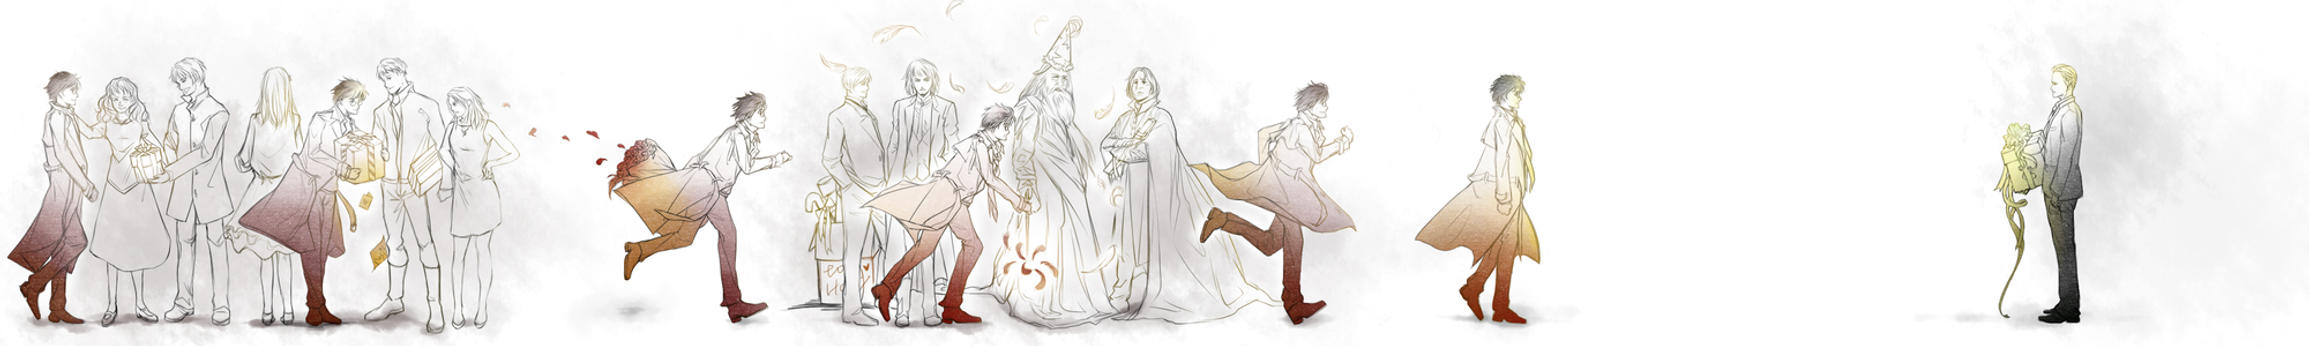 HB to 31Harry James Potter by luosong